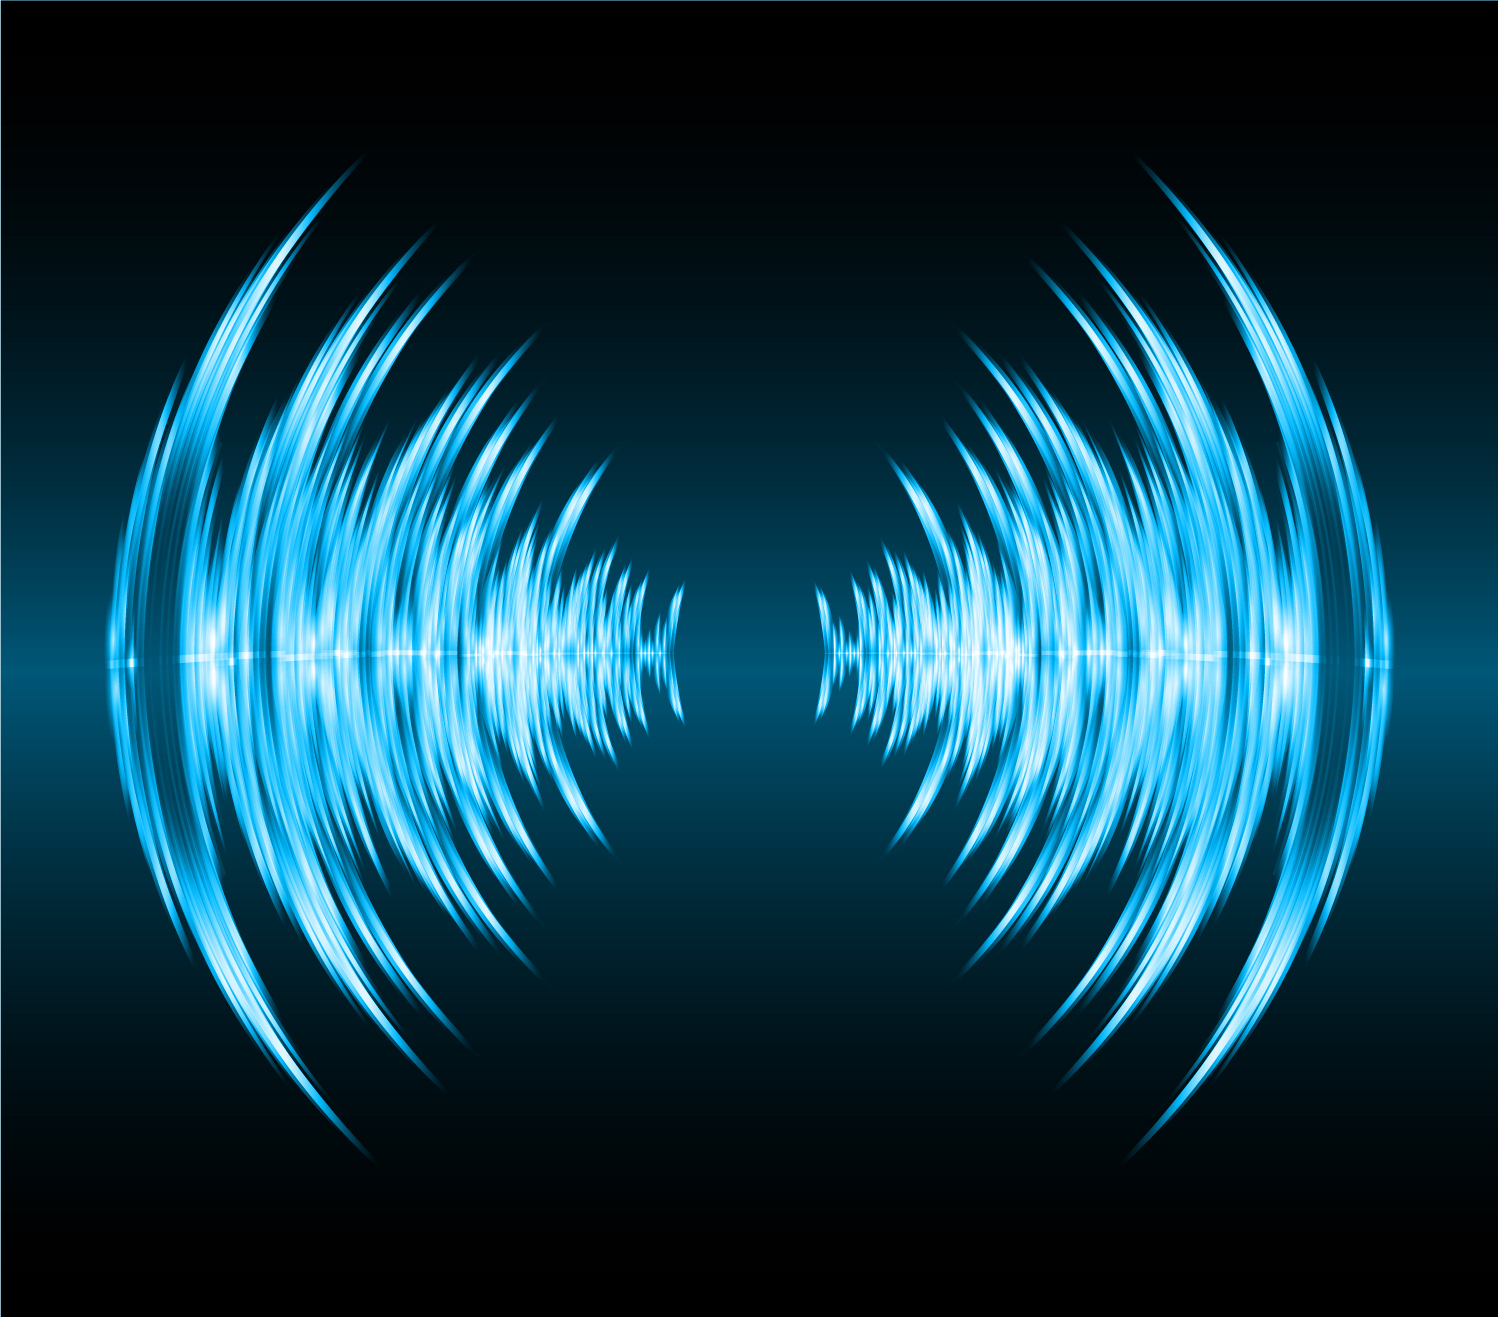 Sound Waves Help Particles Heal - Research & Development World